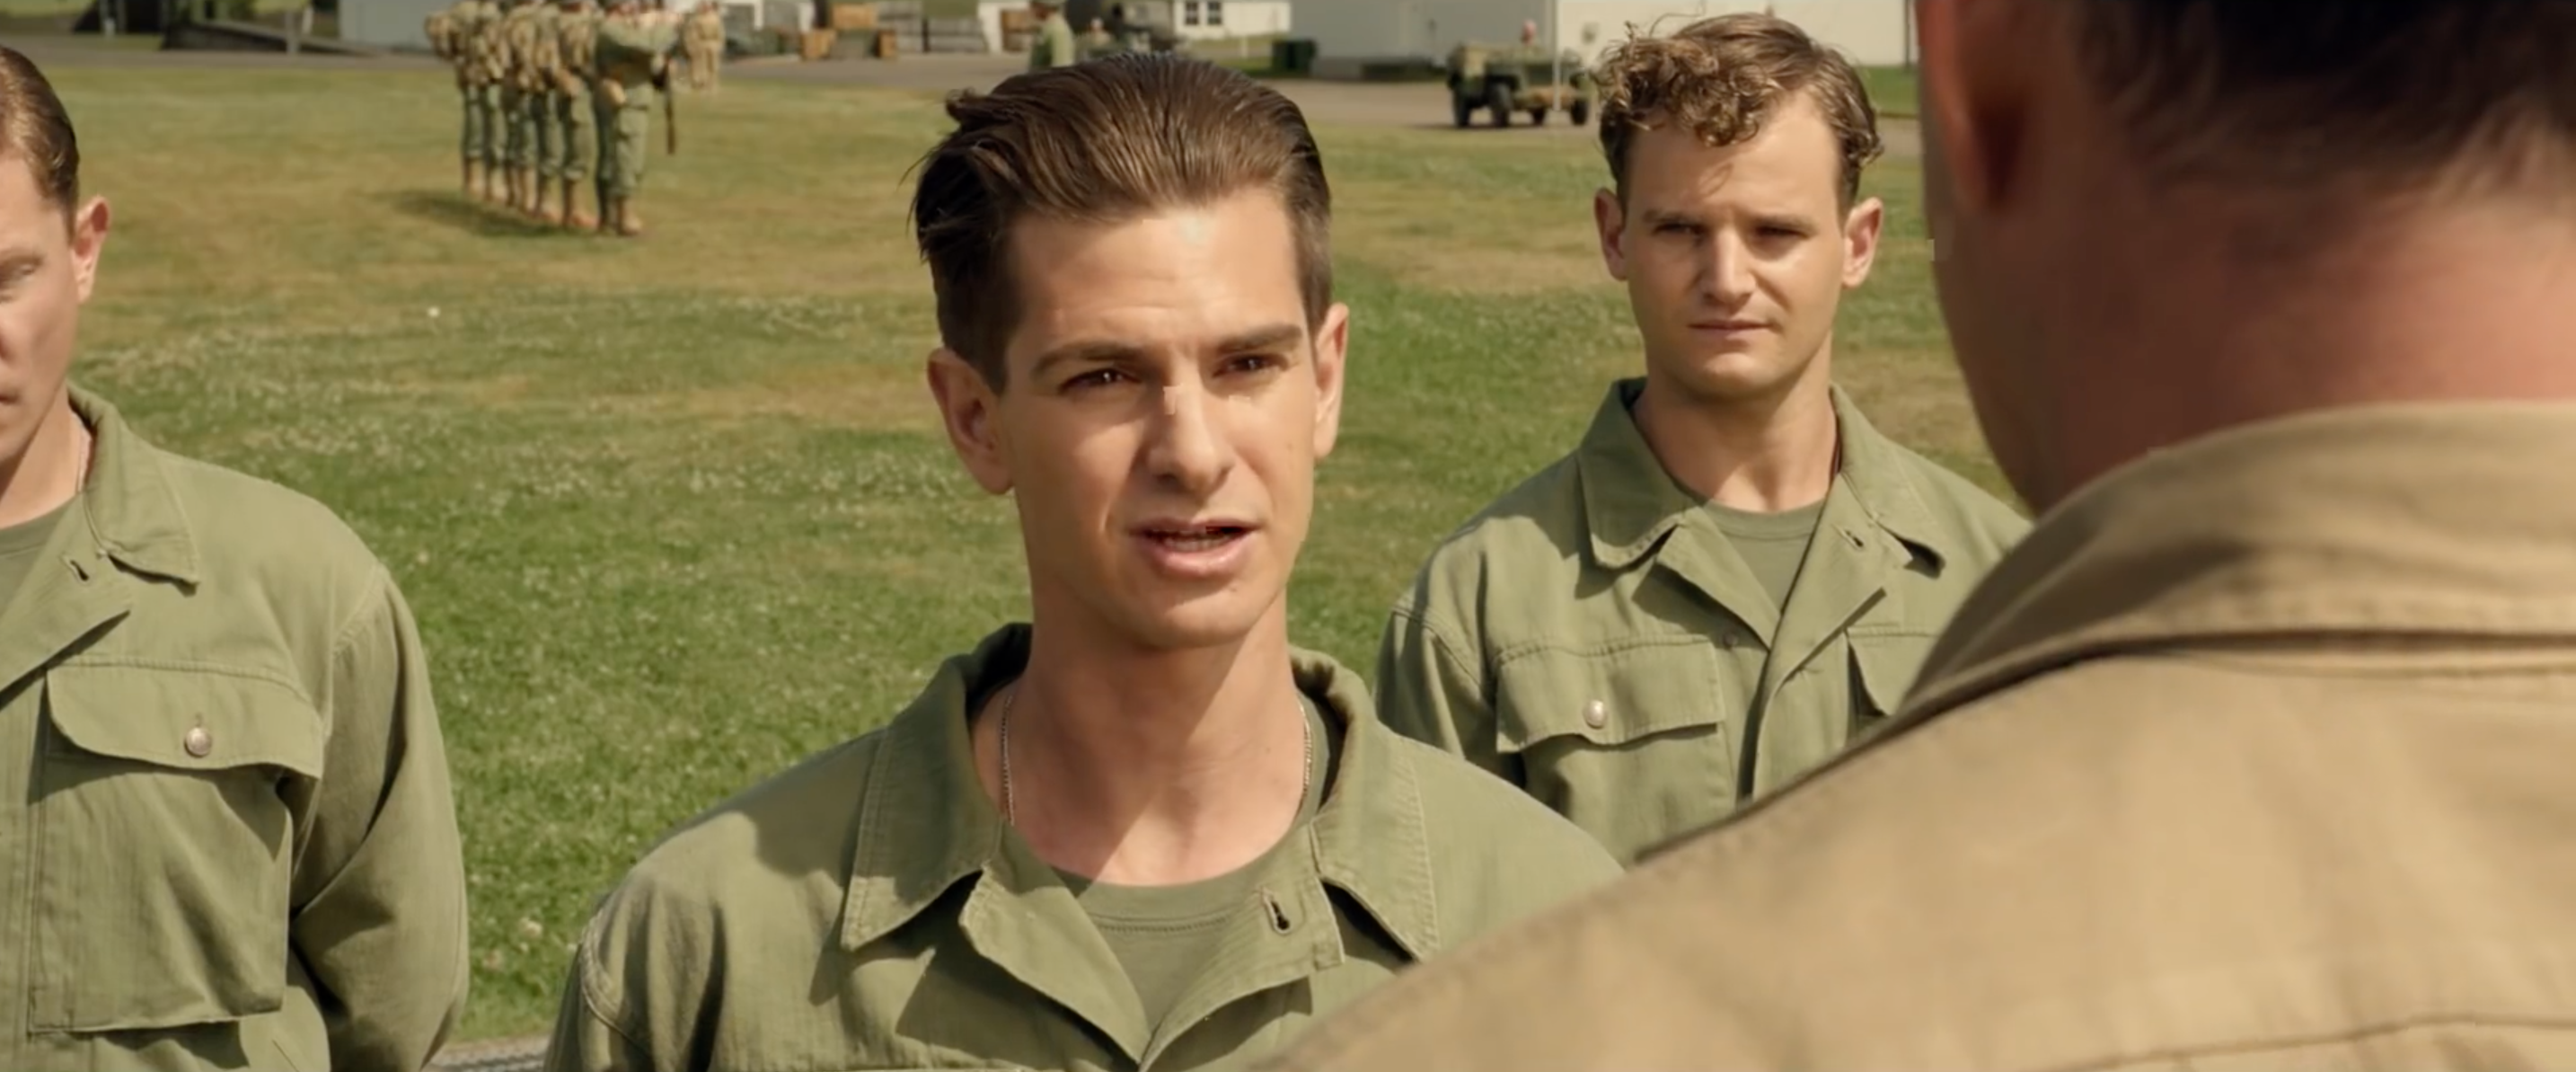 Hacksaw Ridge Trailer First Glimpse Into Portrayal Of Adventist Noncombatant Desmond Doss